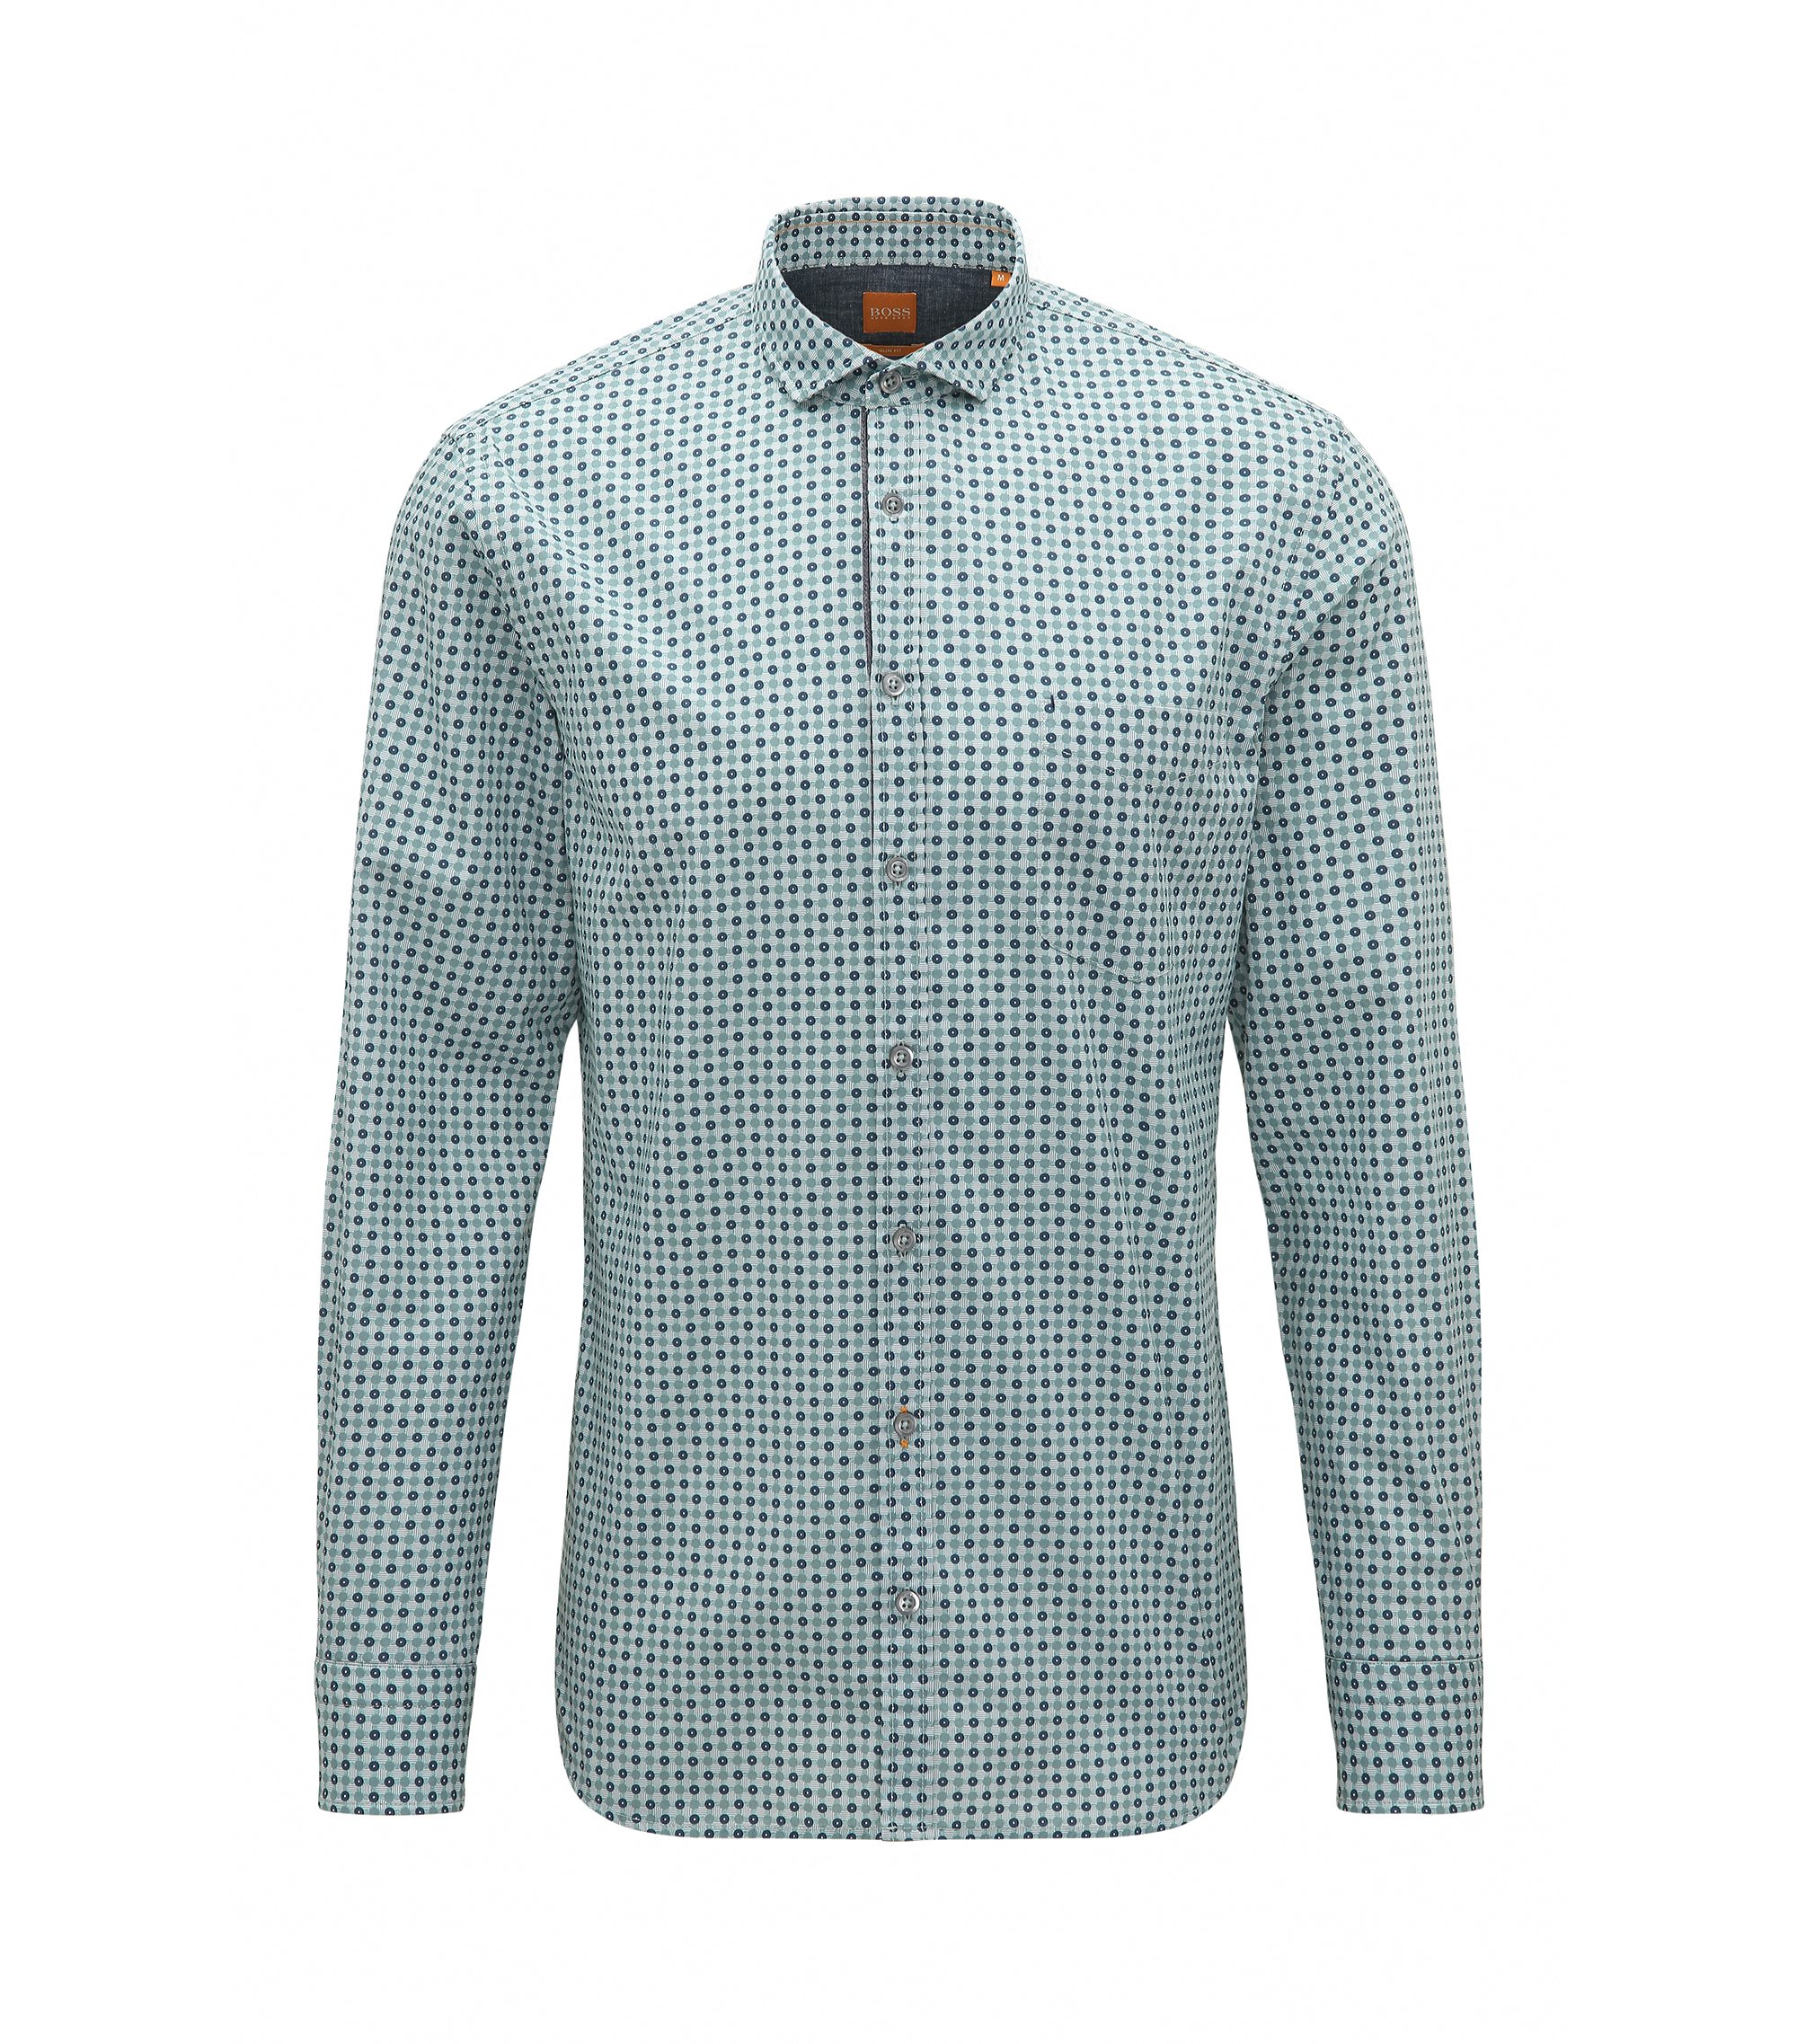 Polka Dot Cotton Sport Shirt, Slim Fit | Cattitude, Turquoise